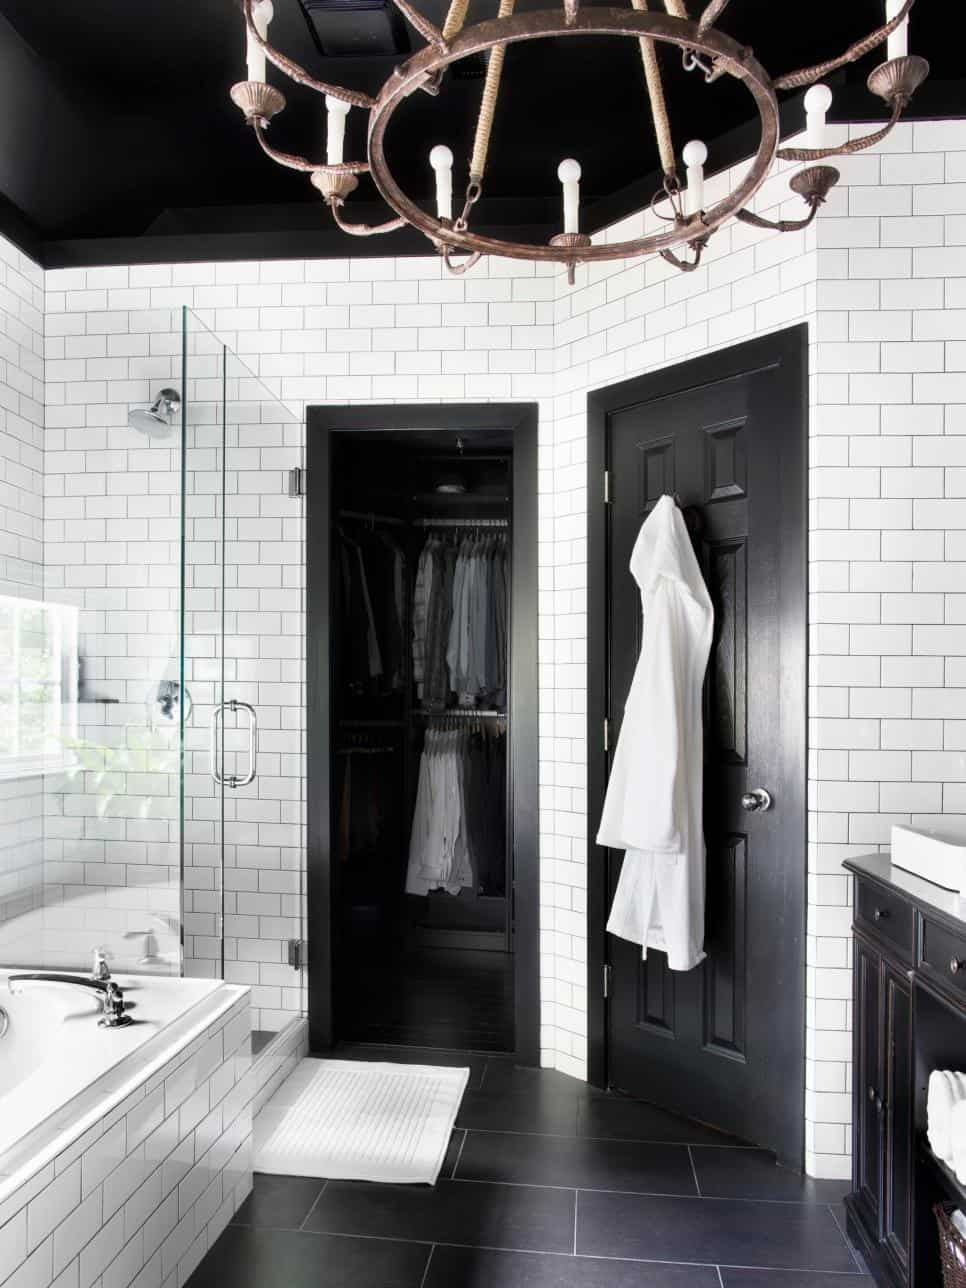 Paint Colors For A Black And White Bathroom bathroom paint colors that always look fresh and clean